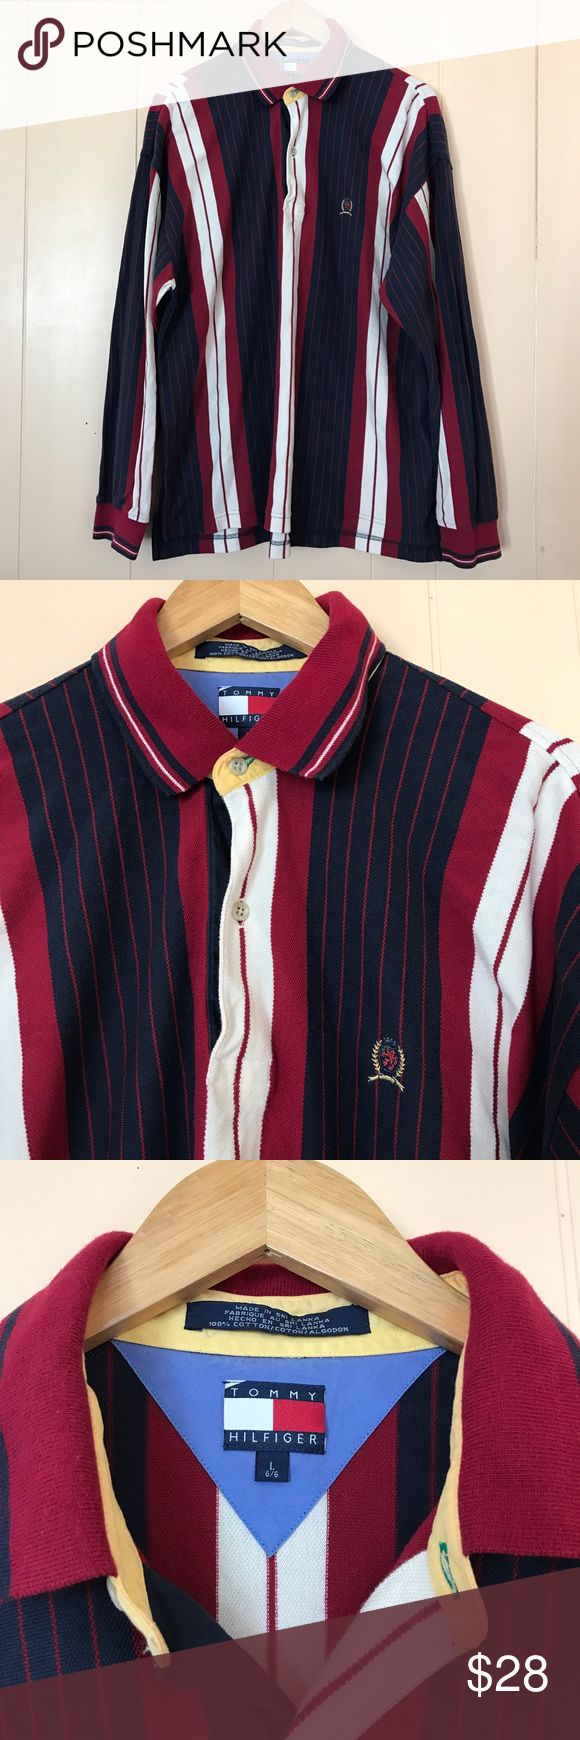 "Vintage Tommy Hilfiger Striped Polo Shirt Brand : Tommy Hilfiger   Size : Large   Materials : 100% Cotton   Condition : In excellent vintage condition.   Measurements :  Chest = 25""  Length = 32"" Vintage Shirts Polos"